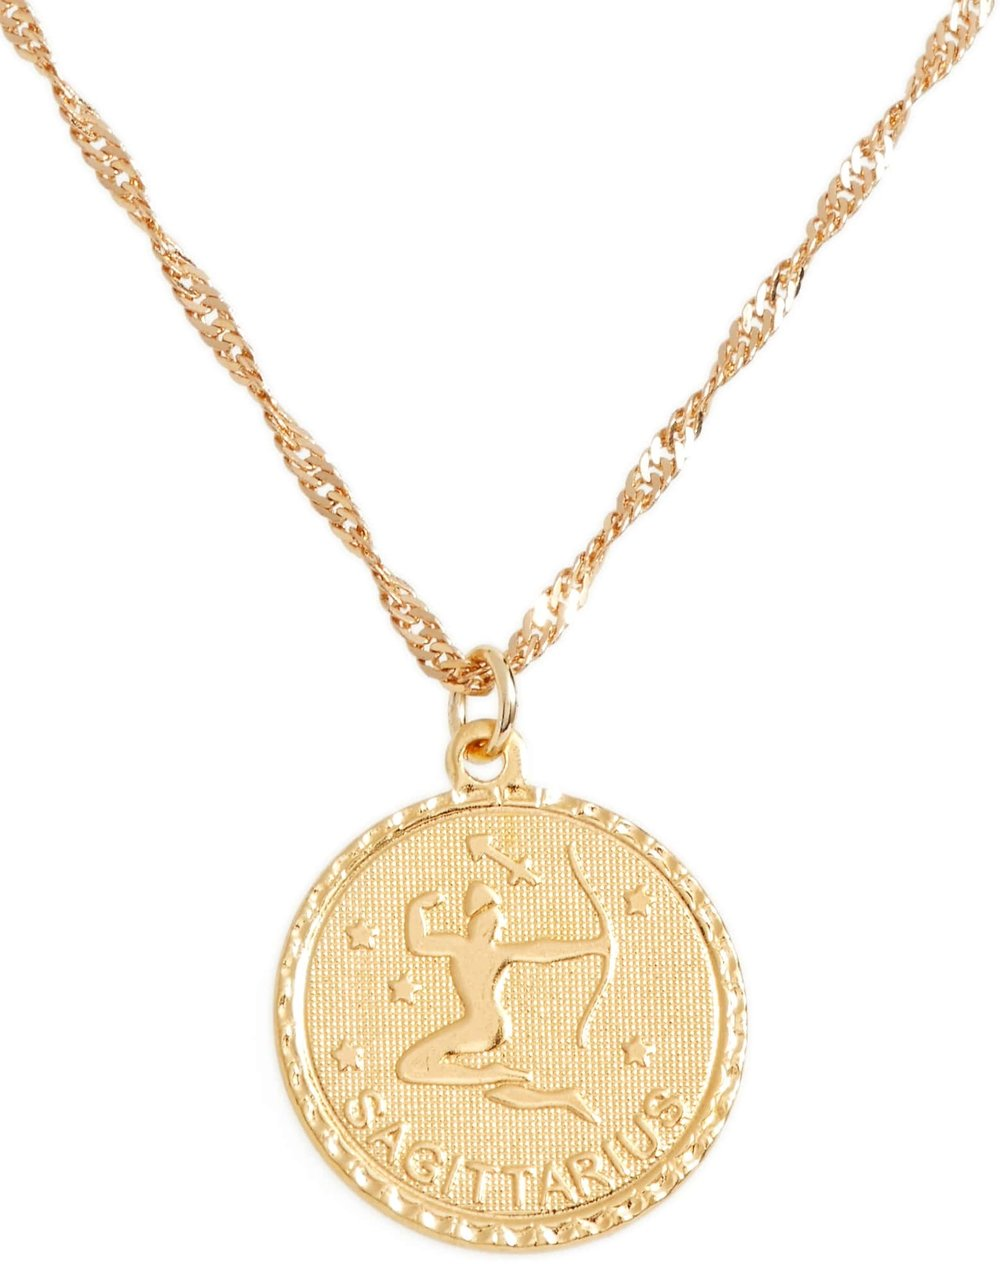 Zodiac Necklace - Get one for yourself & all your besties.